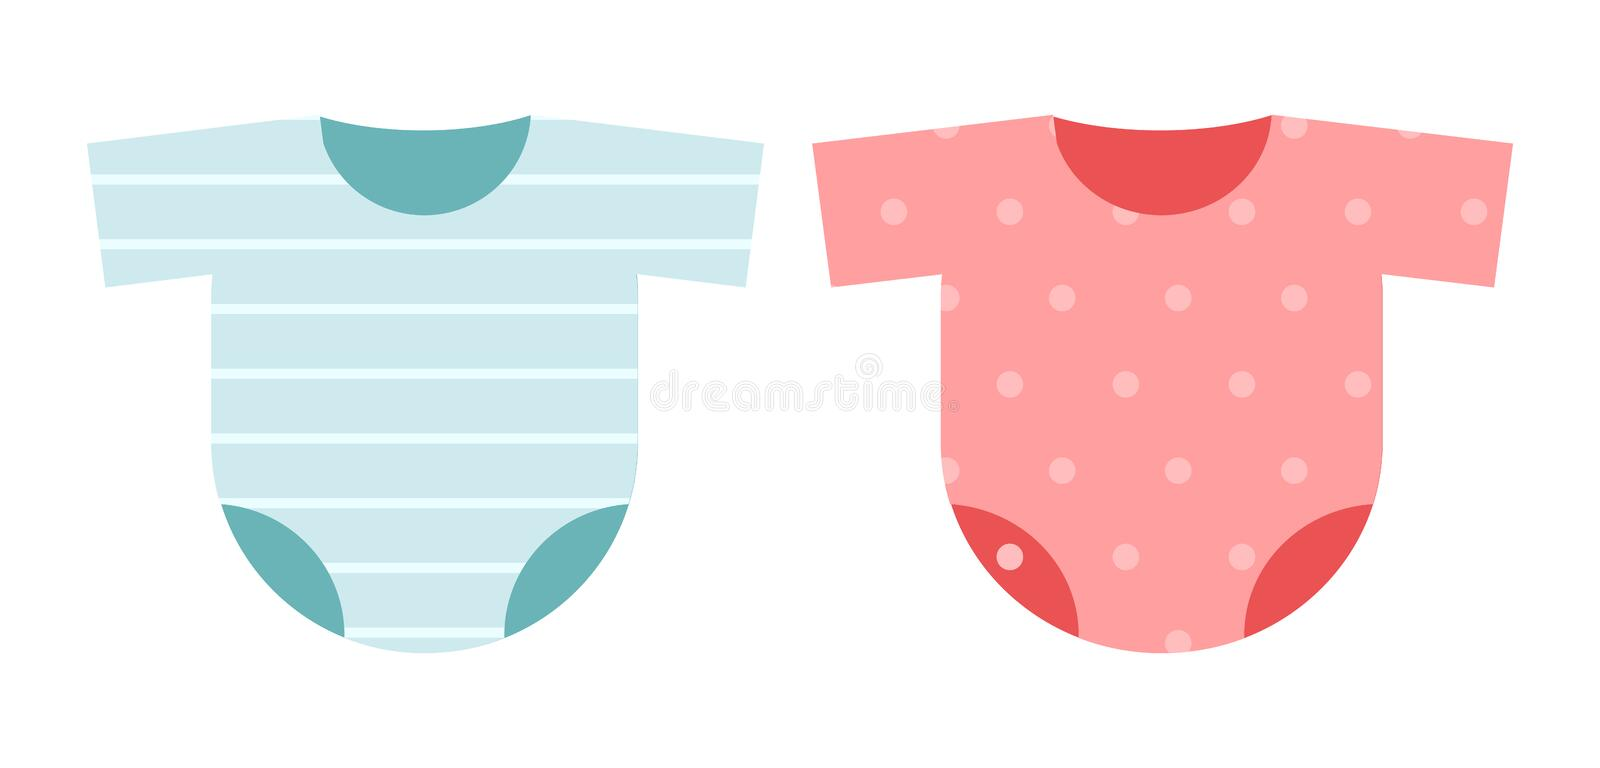 Clothes icon set for kids: costumes bodysuit striped blue for the boy and pink polka dots for girl stock illustration